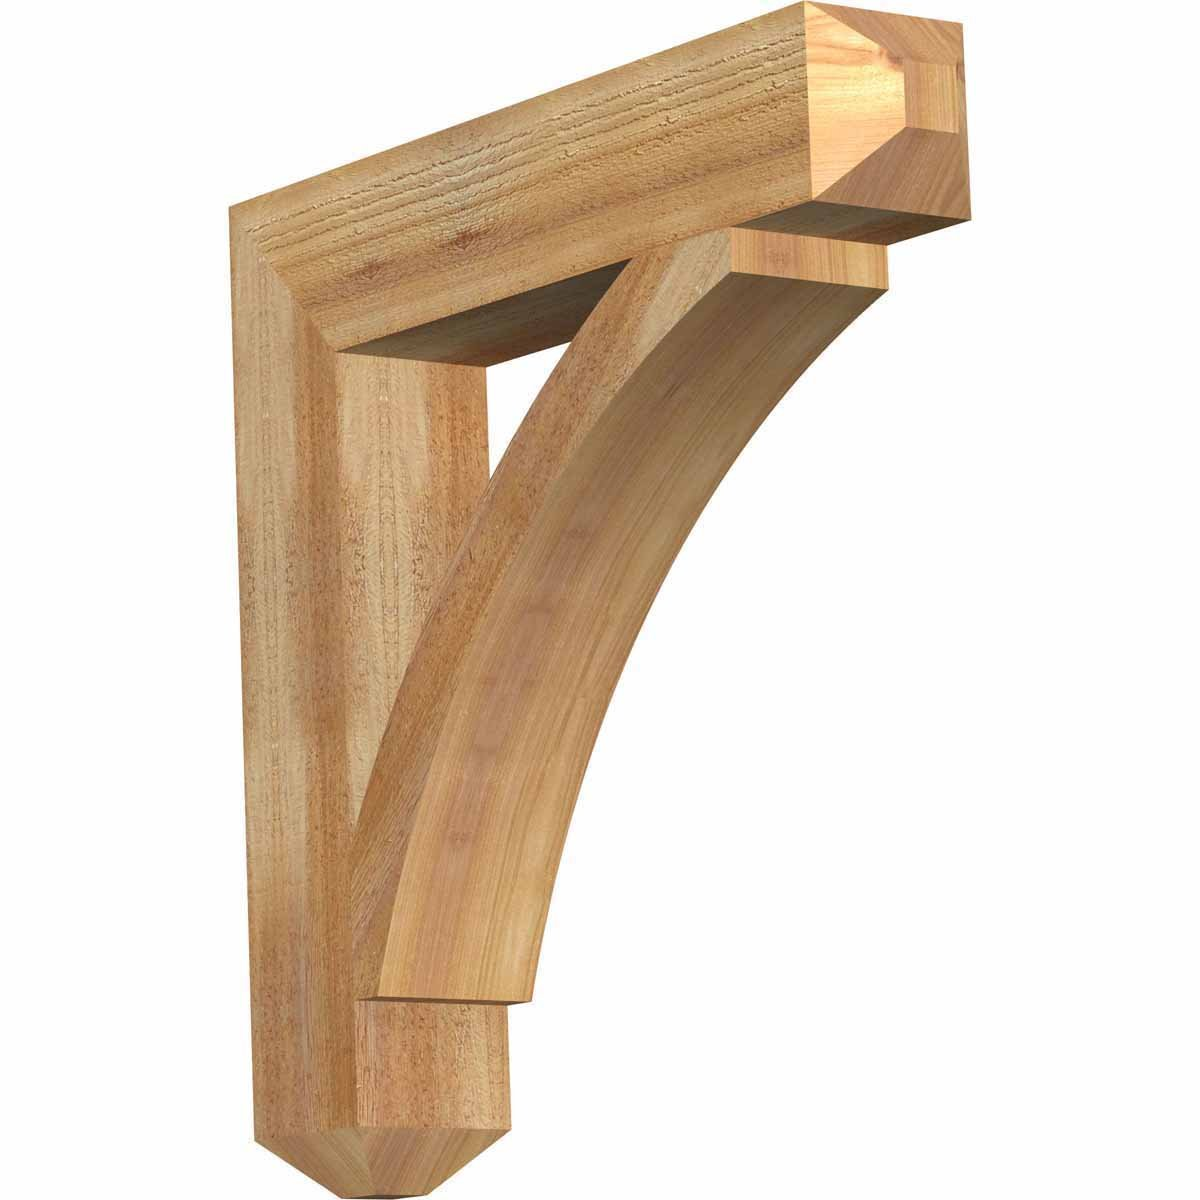 Ekena Millwork BKT04X22X22THR04RWR Thorton Craftsman Rough Sawn Bracket, 4'' Width x 22'' Depth x 22'' Height, Western Red Cedar